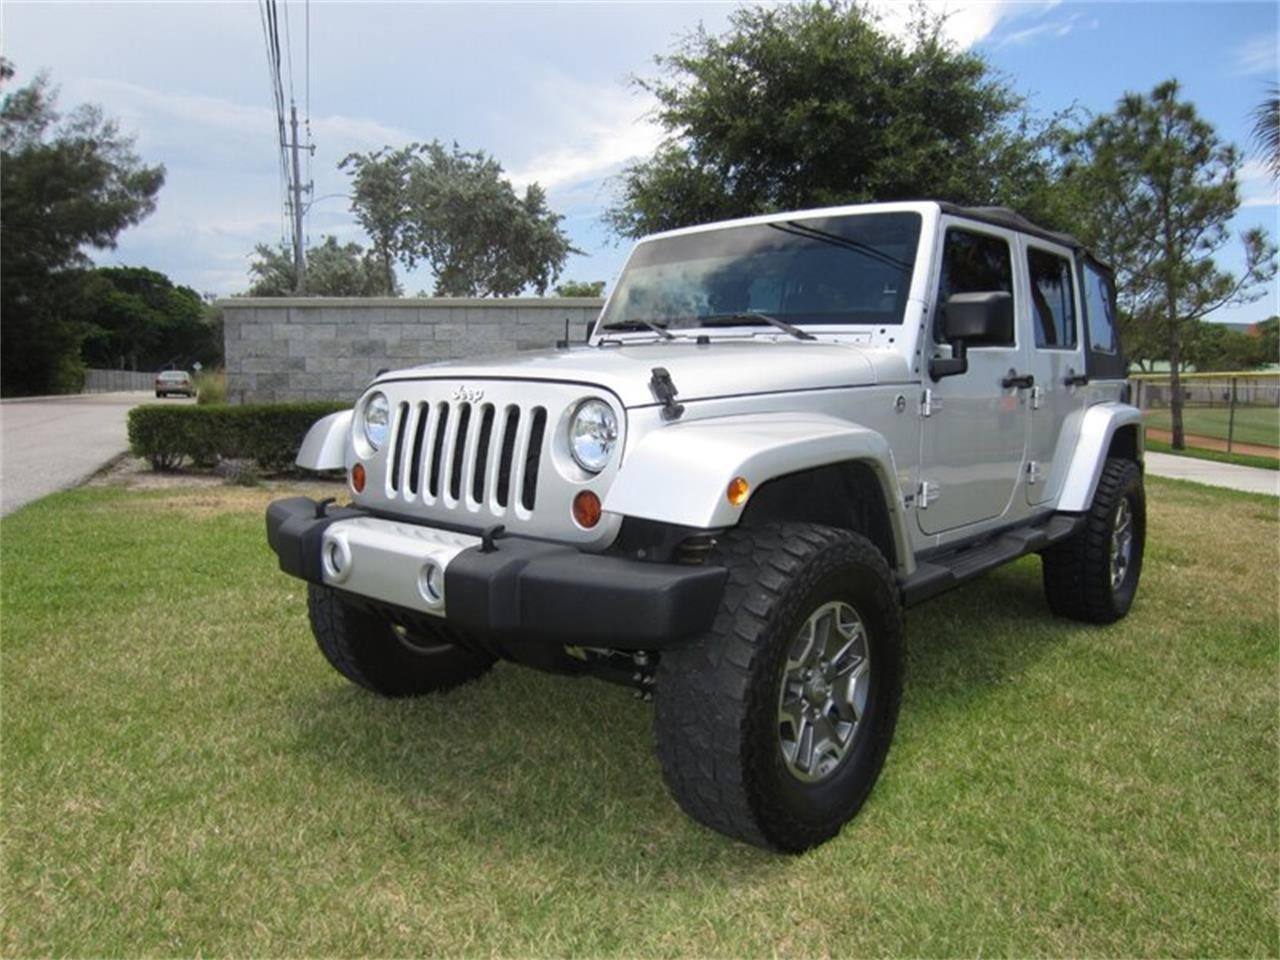 jeep wrangler beach classic delray florida cc classiccars financing inspection insurance transport